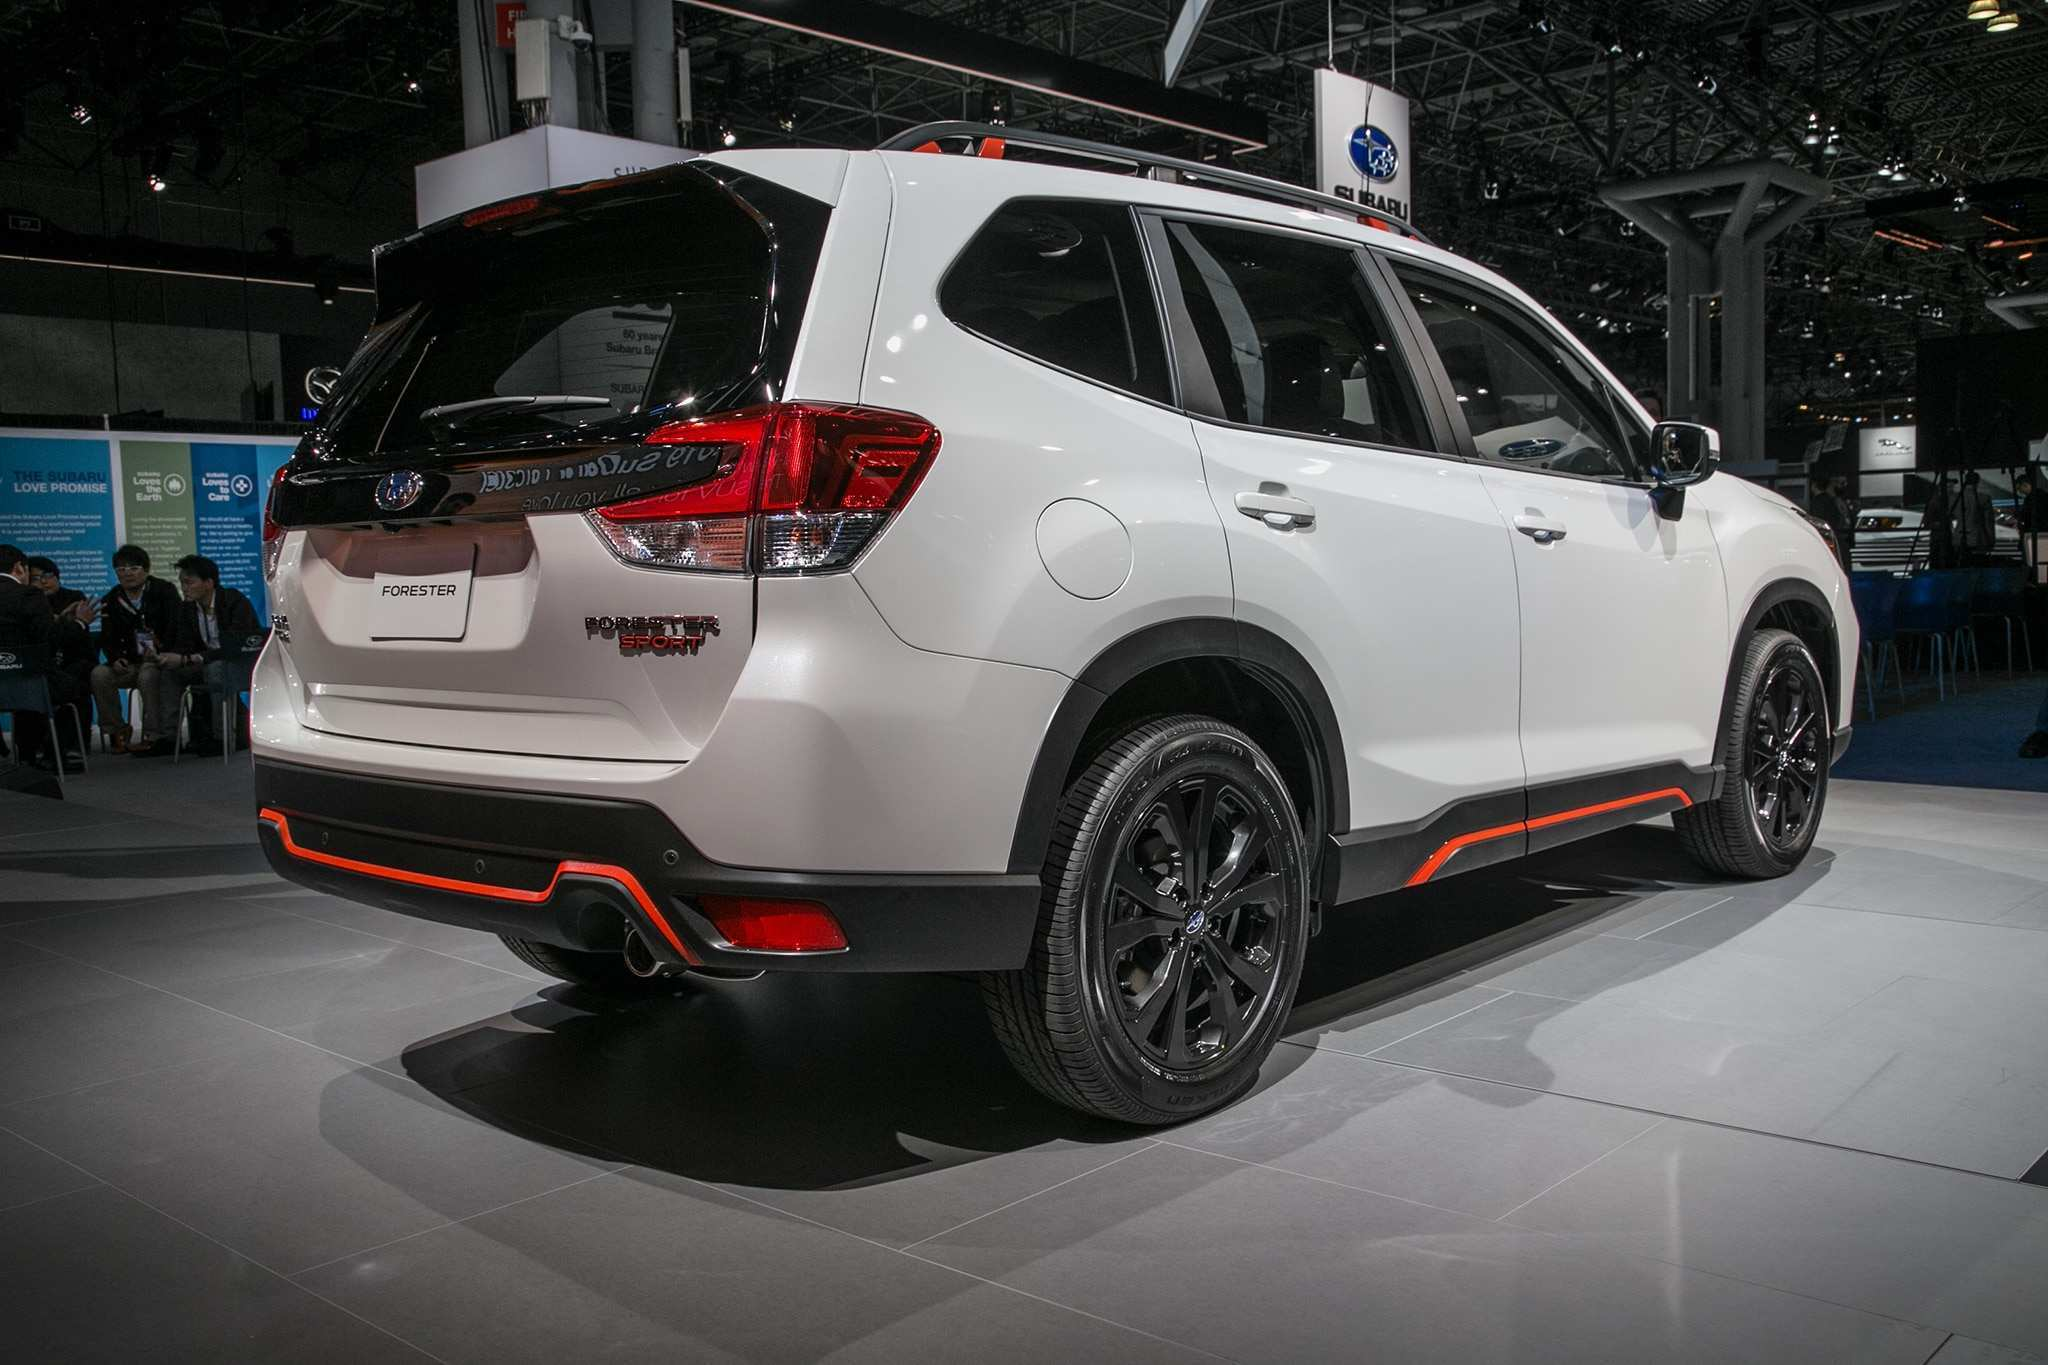 33 Great The Subaru 2019 Forester Specs Interior Ratings by The Subaru 2019 Forester Specs Interior